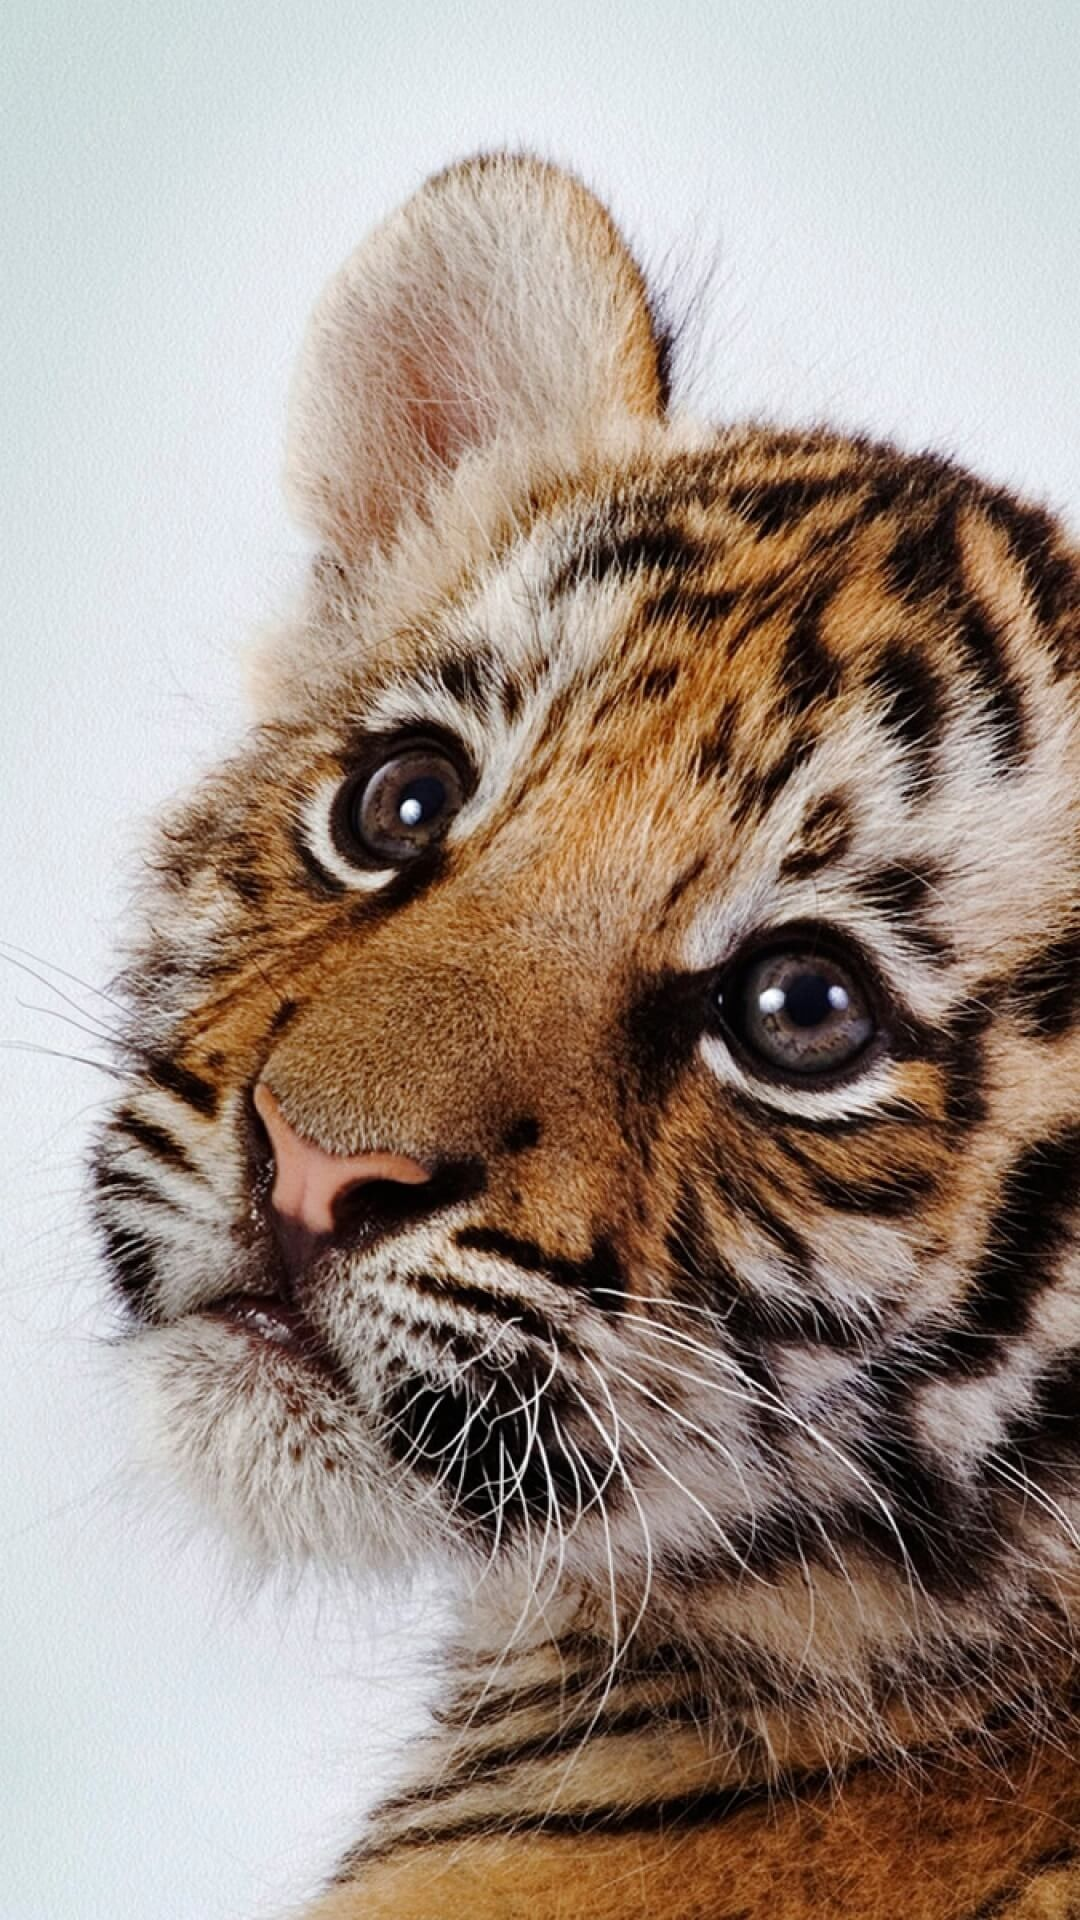 Baby Animal Iphone Wallpaper In 2020 Tiger Wallpaper Tiger Wallpaper Iphone Hd Wallpaper Android